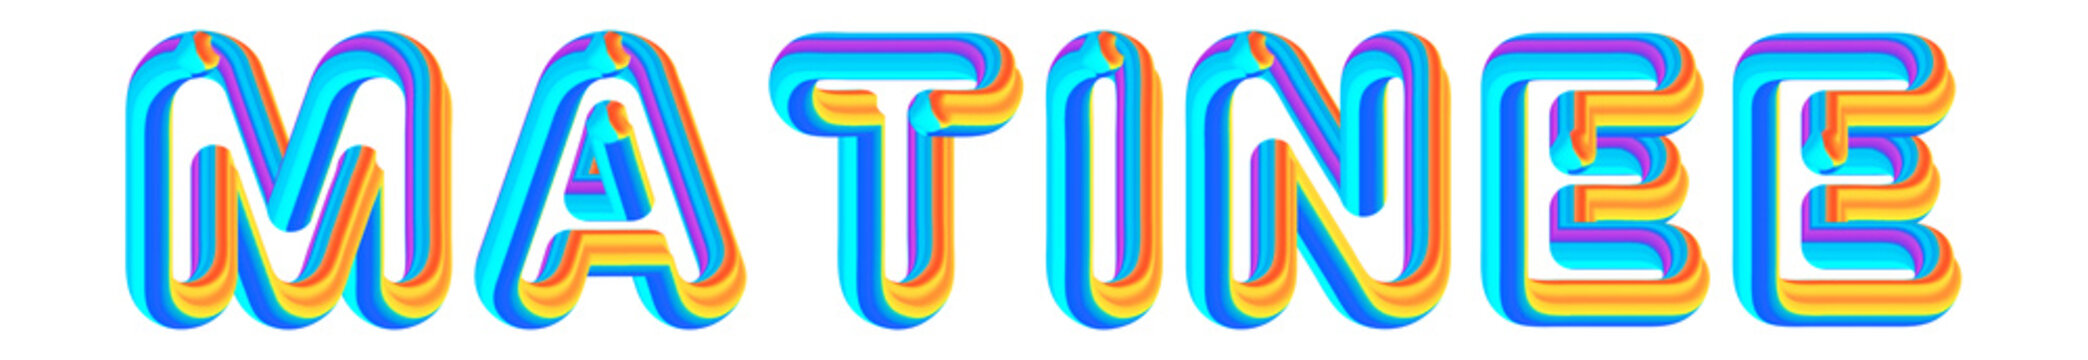 Matinee - colorful text written on white background